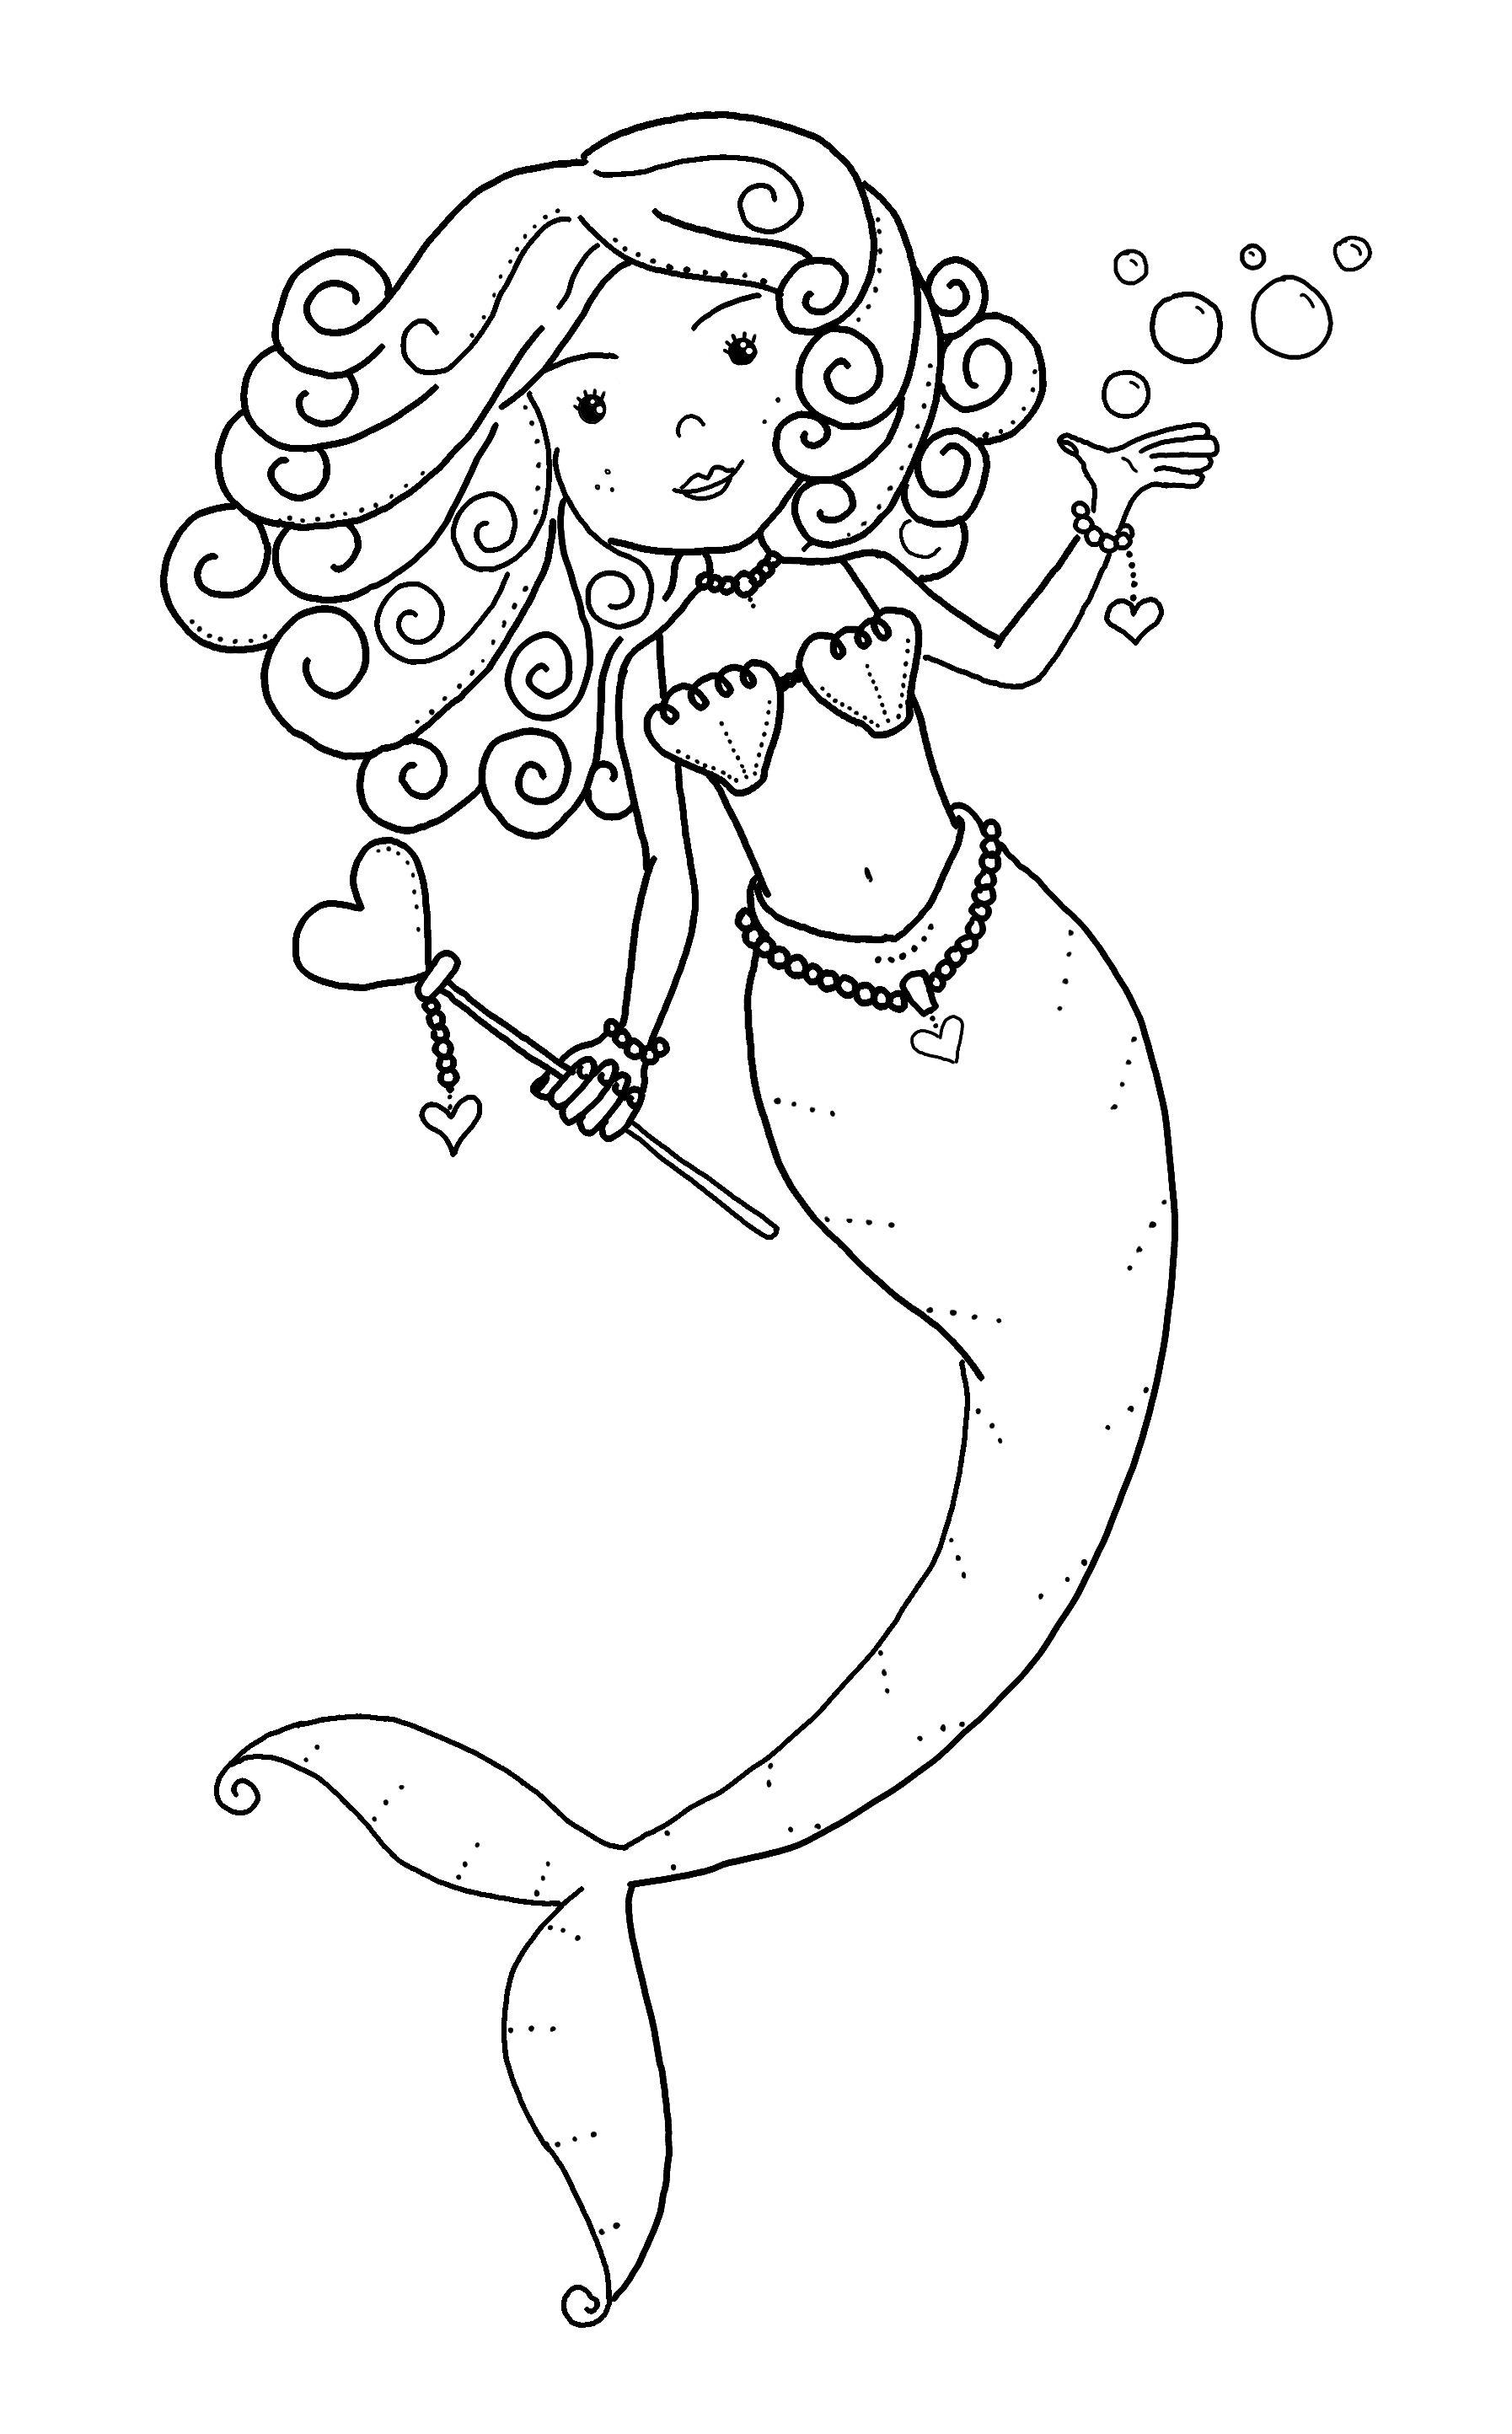 Pin By Heather Gaston On Digital Stamps Mermaid Coloring Pages Mermaid Coloring Coloring Pages